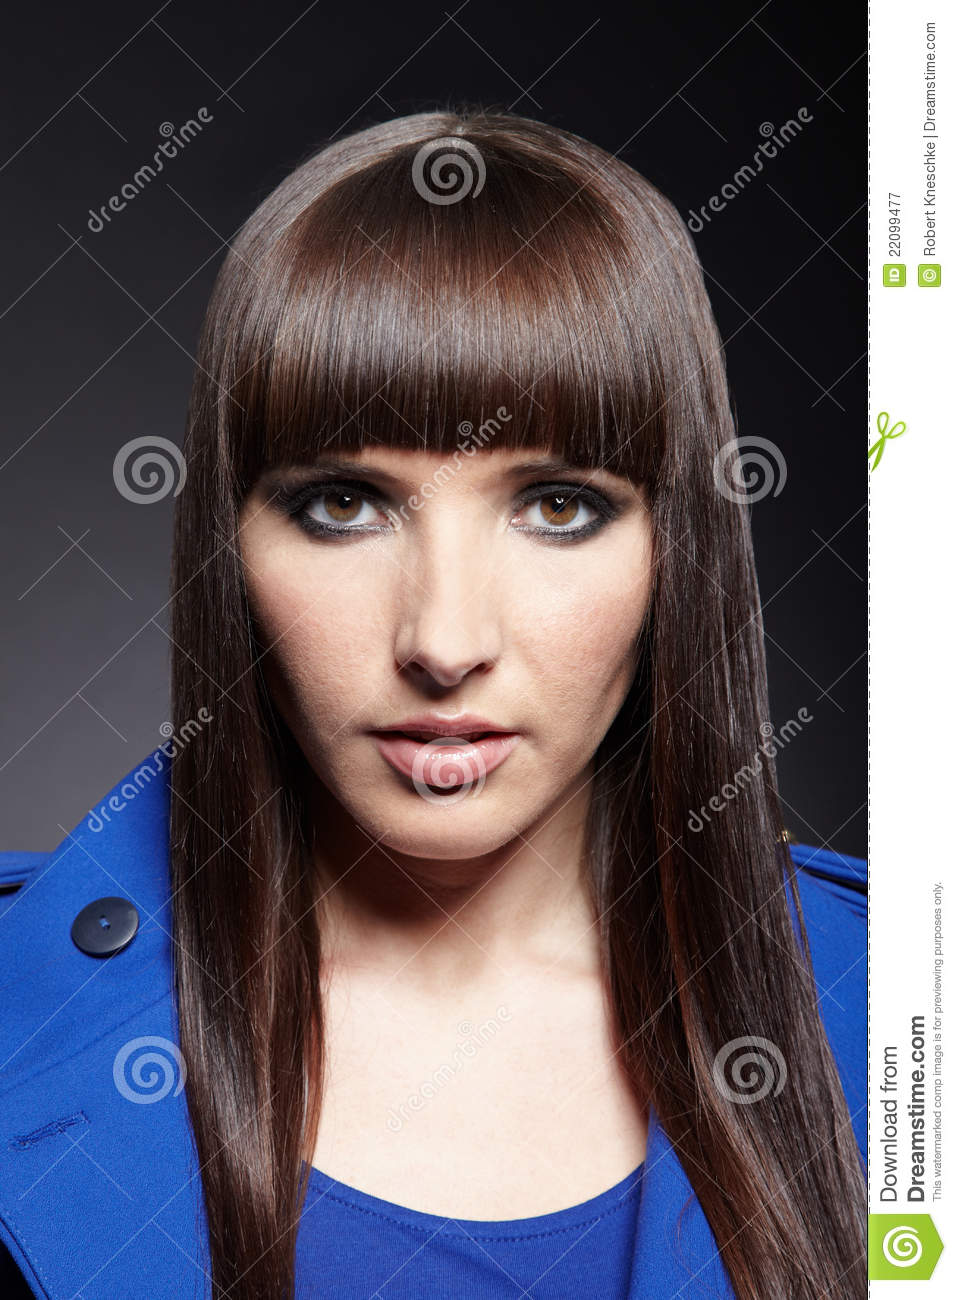 Woman With Pageboy Haircut Stock Image Image Of Looking 22099477